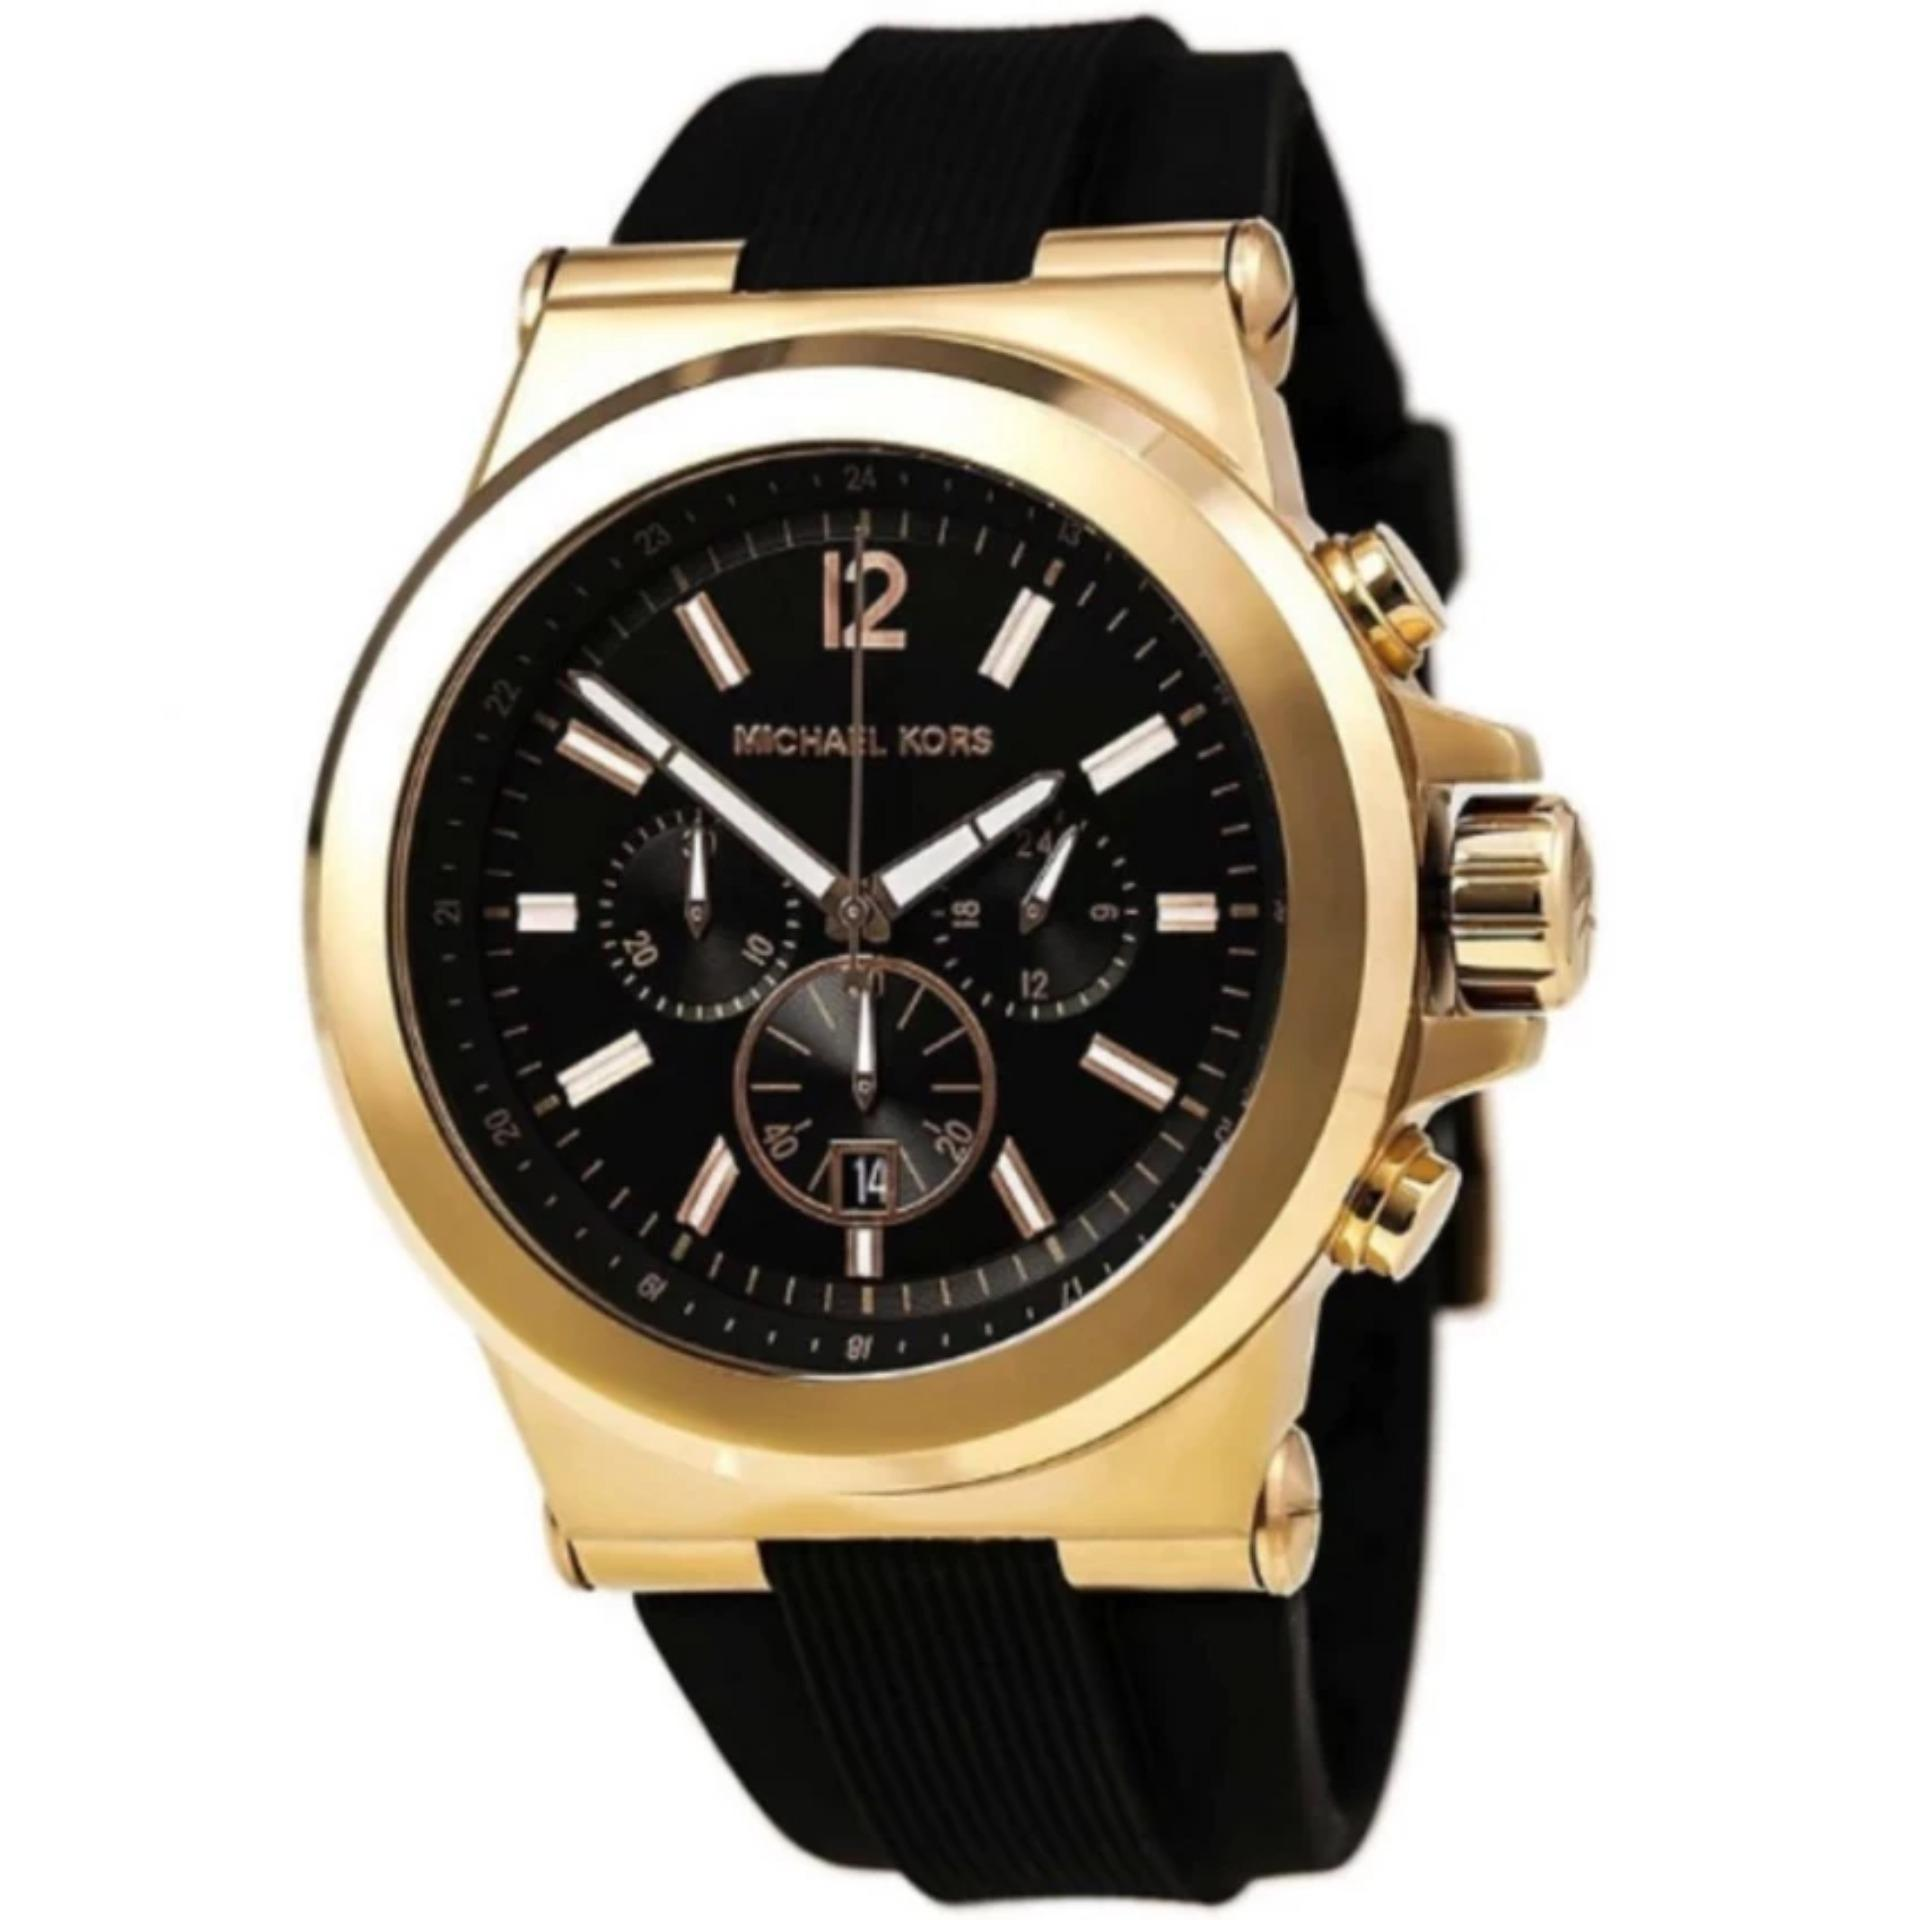 aa8230c8092 ... Michael Kors Dylan Chronograph Black Dial Black Silicone Men s Large  Size Watch-MK8445 ...